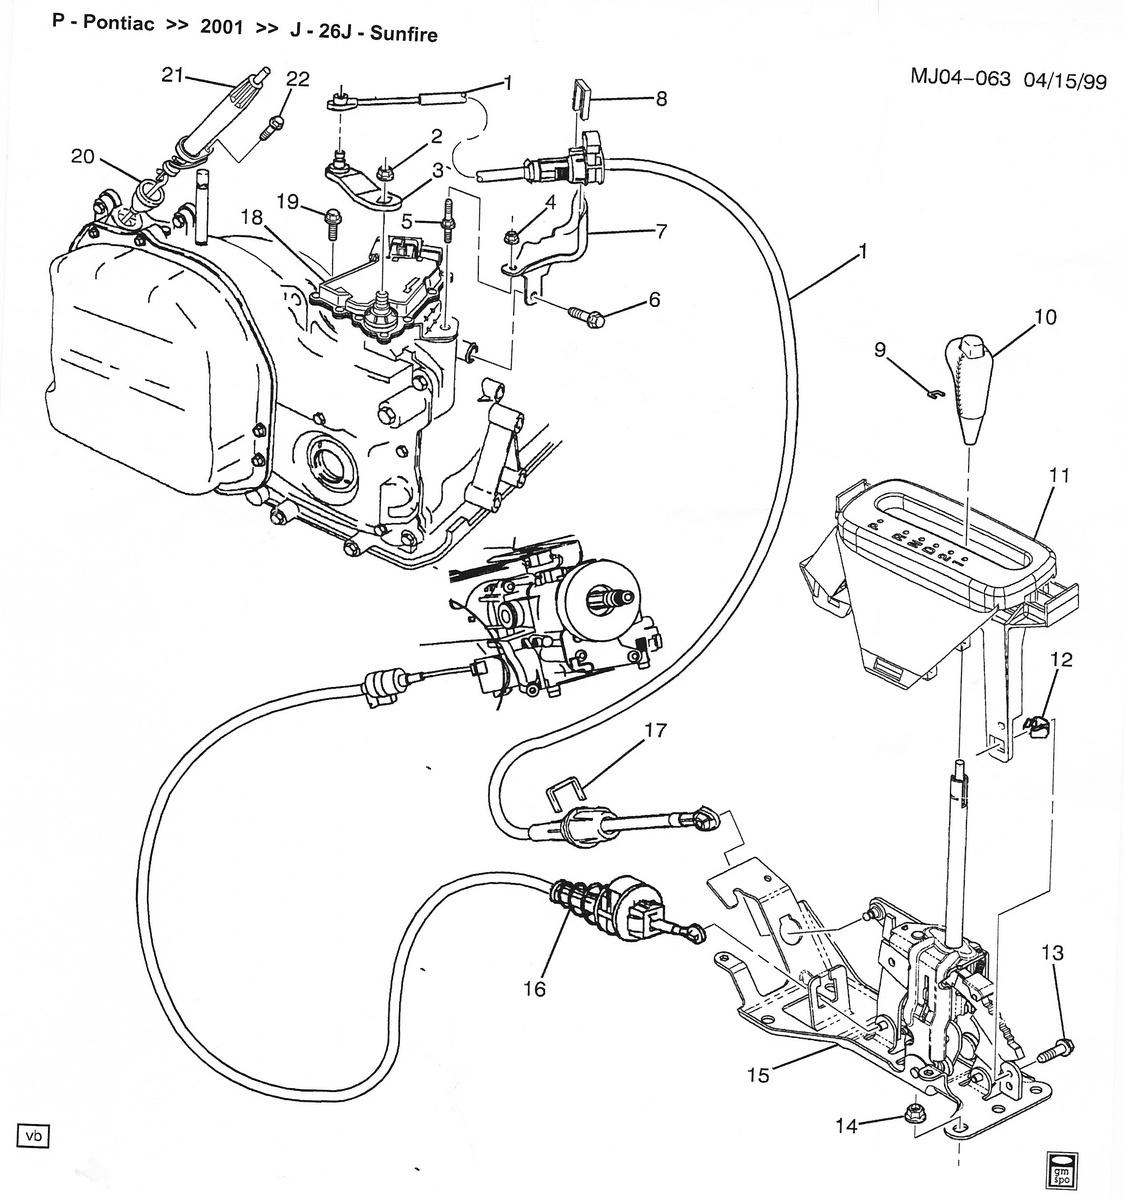 Pontiac Aztek Heater Core Location additionally 4th gen tech2 also RepairGuideContent as well Discussion D608 ds527417 besides 1957 Chevy Under Dash Wiring Harness. on 2005 gto fuel pump wiring diagram